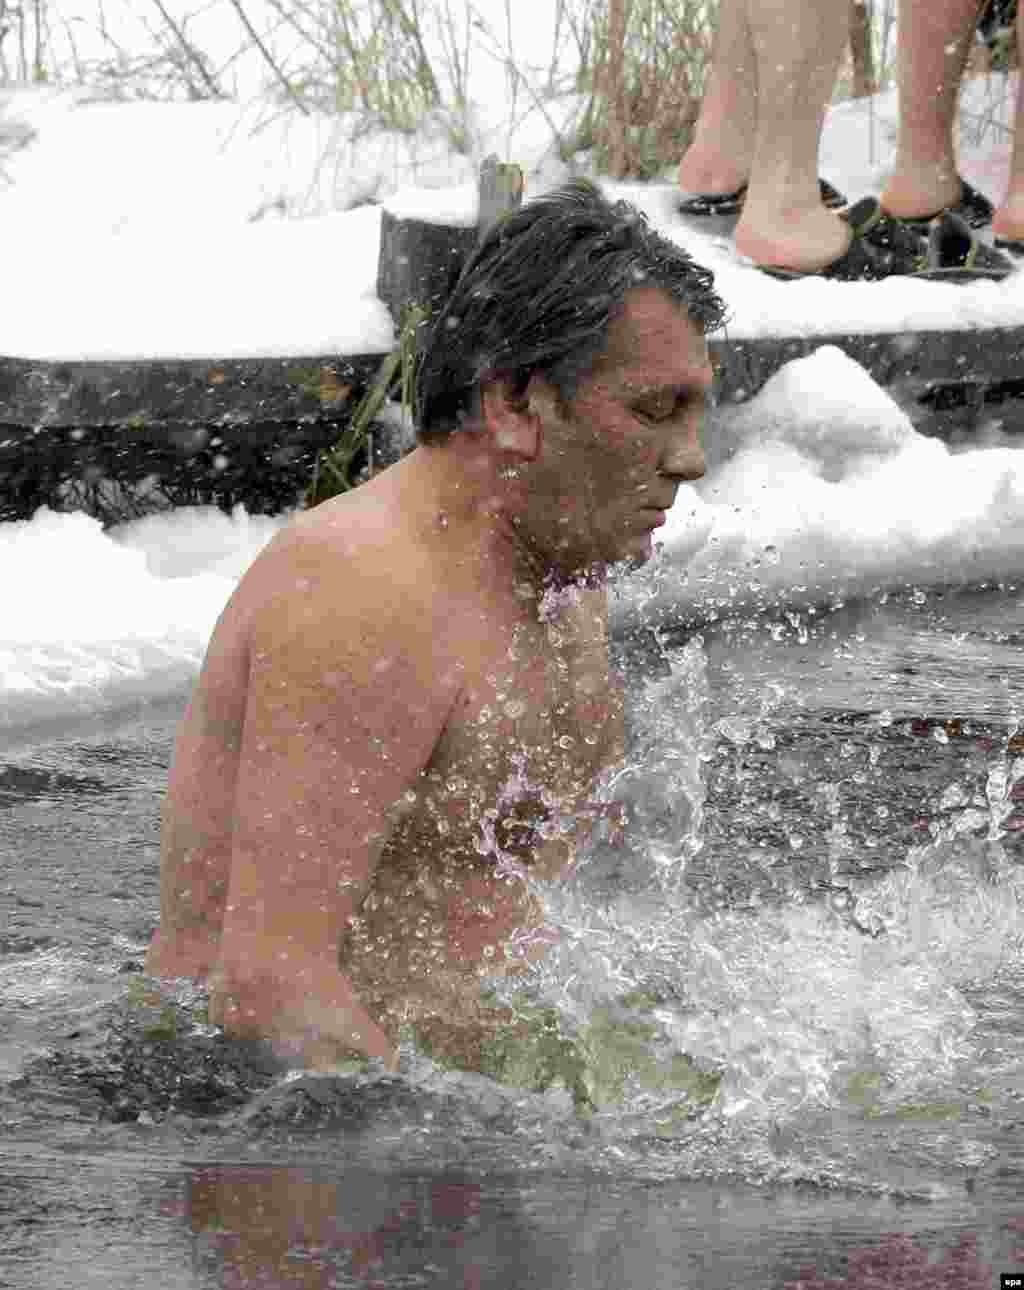 Ukrainian President Viktor Yushchenko takes a dip in the ice-cold waters of the Dnieper River in January (epa) - Oil and gas are forms of 'soft power,' but it felt hard and harsh to Ukrainians when, in the middle of winter, Russia turned the gas taps off. Georgians too found themselves freezing, and few there believed the January explosions that cut the pipeline from Russia were accidental. The suspicions persisted and across Europe politicians voiced fears that Russia is using its energy power too energetically.